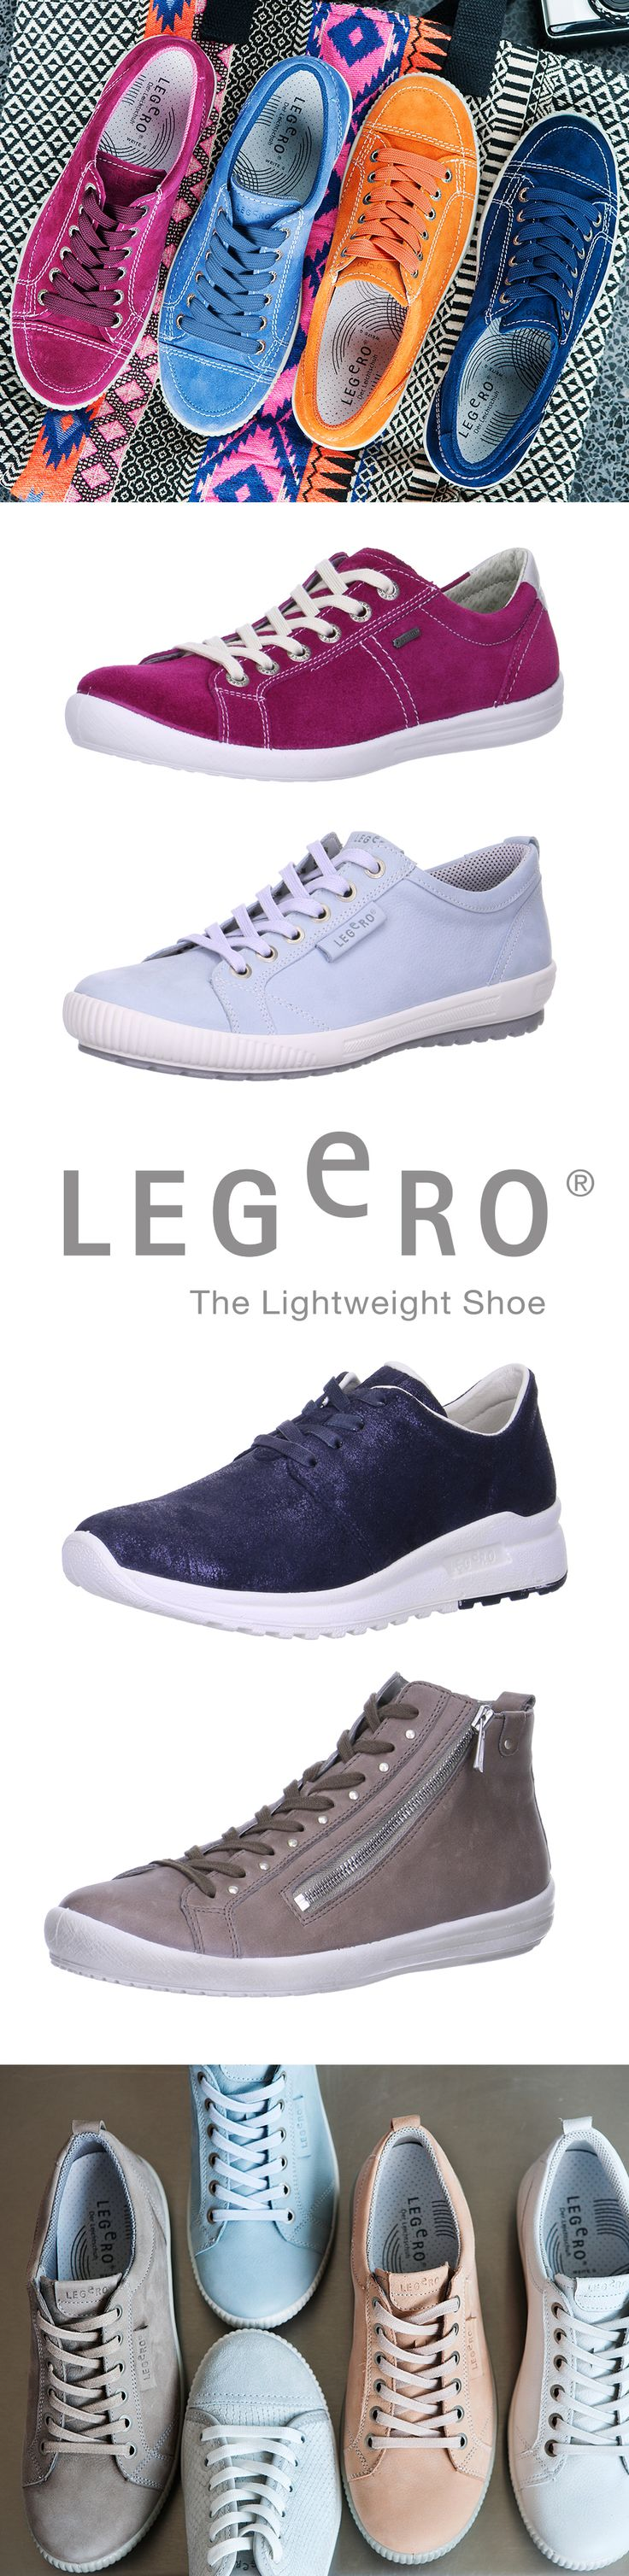 legero shoes